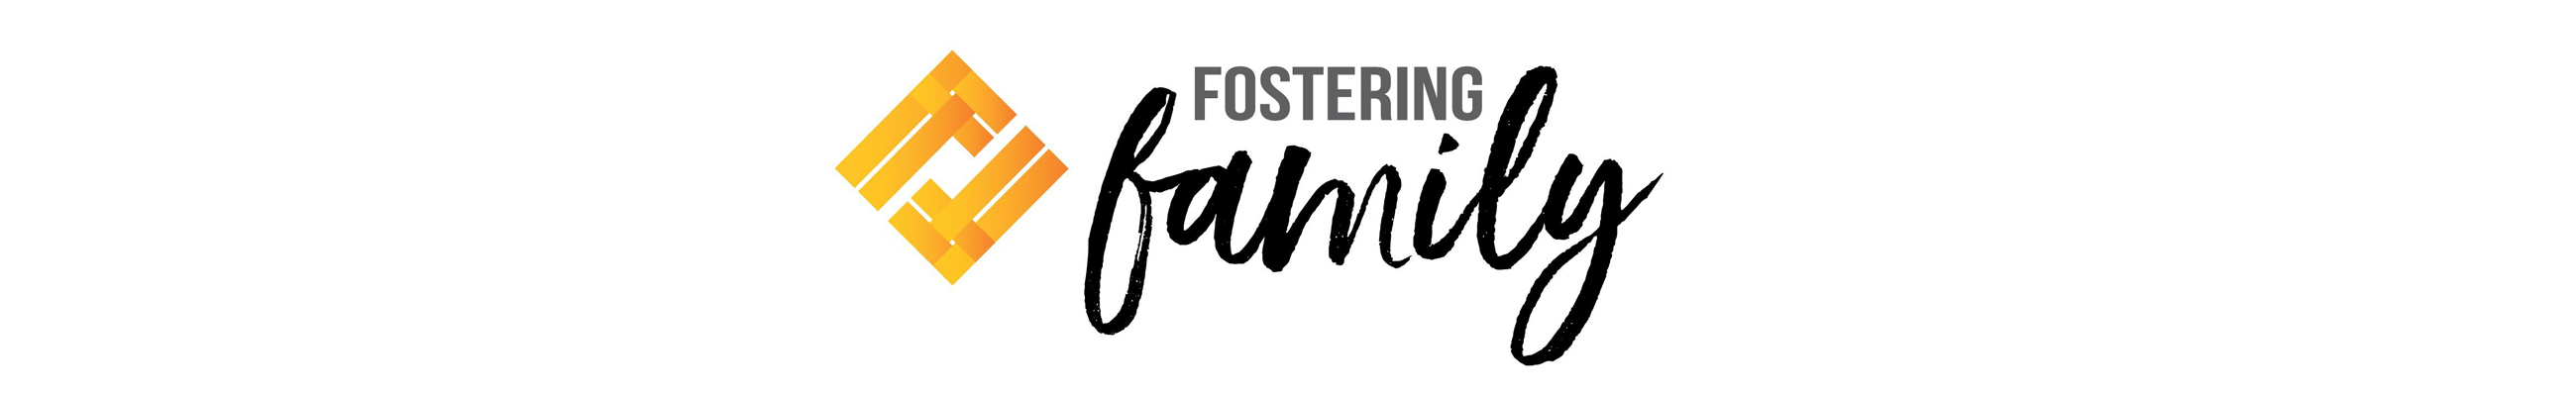 Foster-Care-Support-Fostering-Family-Amara